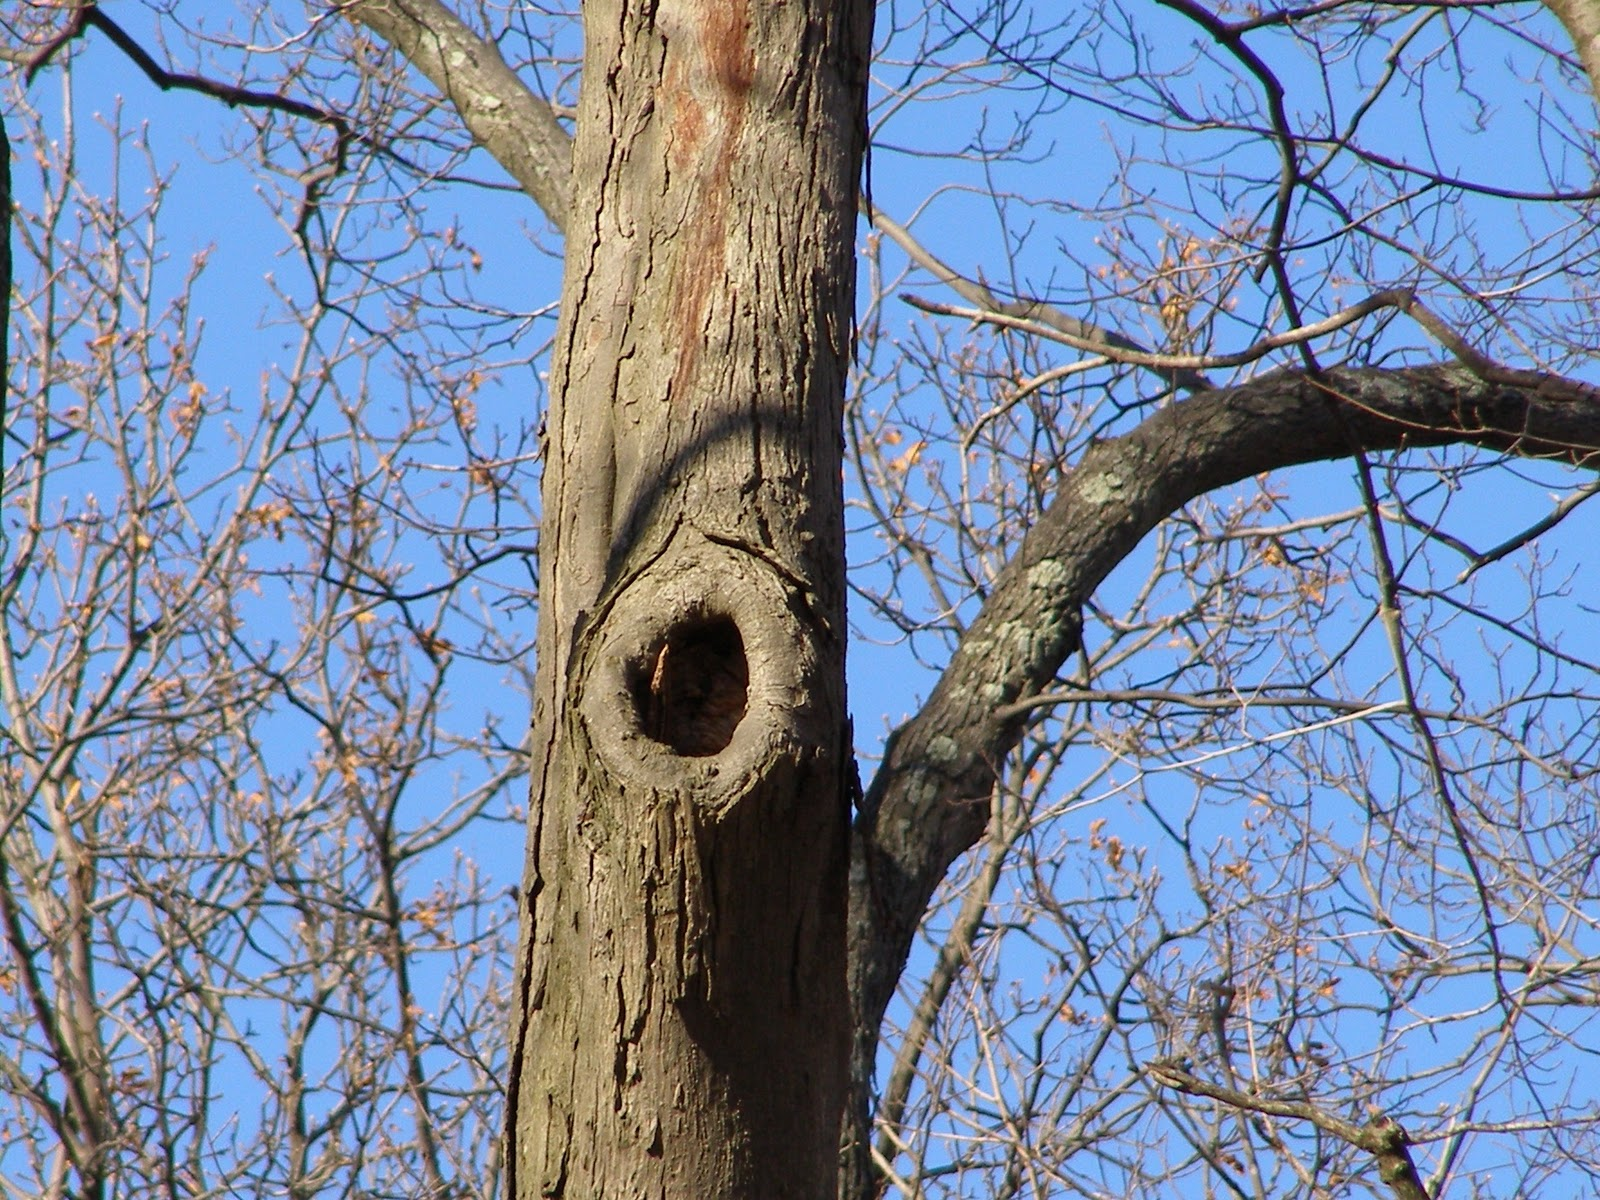 Blue Jay Barrens: Tree Holes